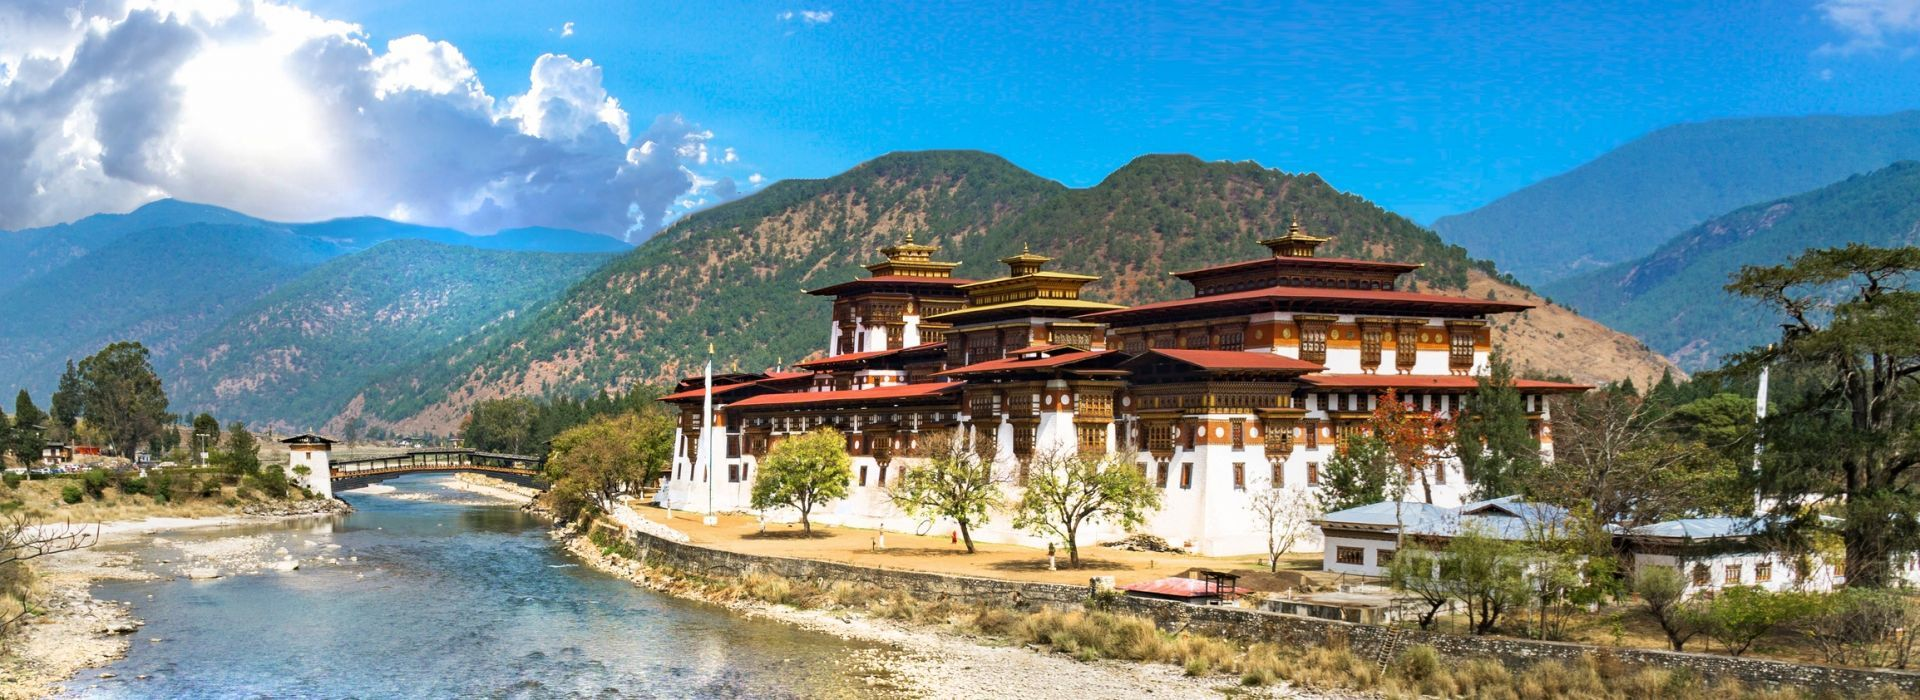 Sightseeing, attractions, culture and history Tours in Paro